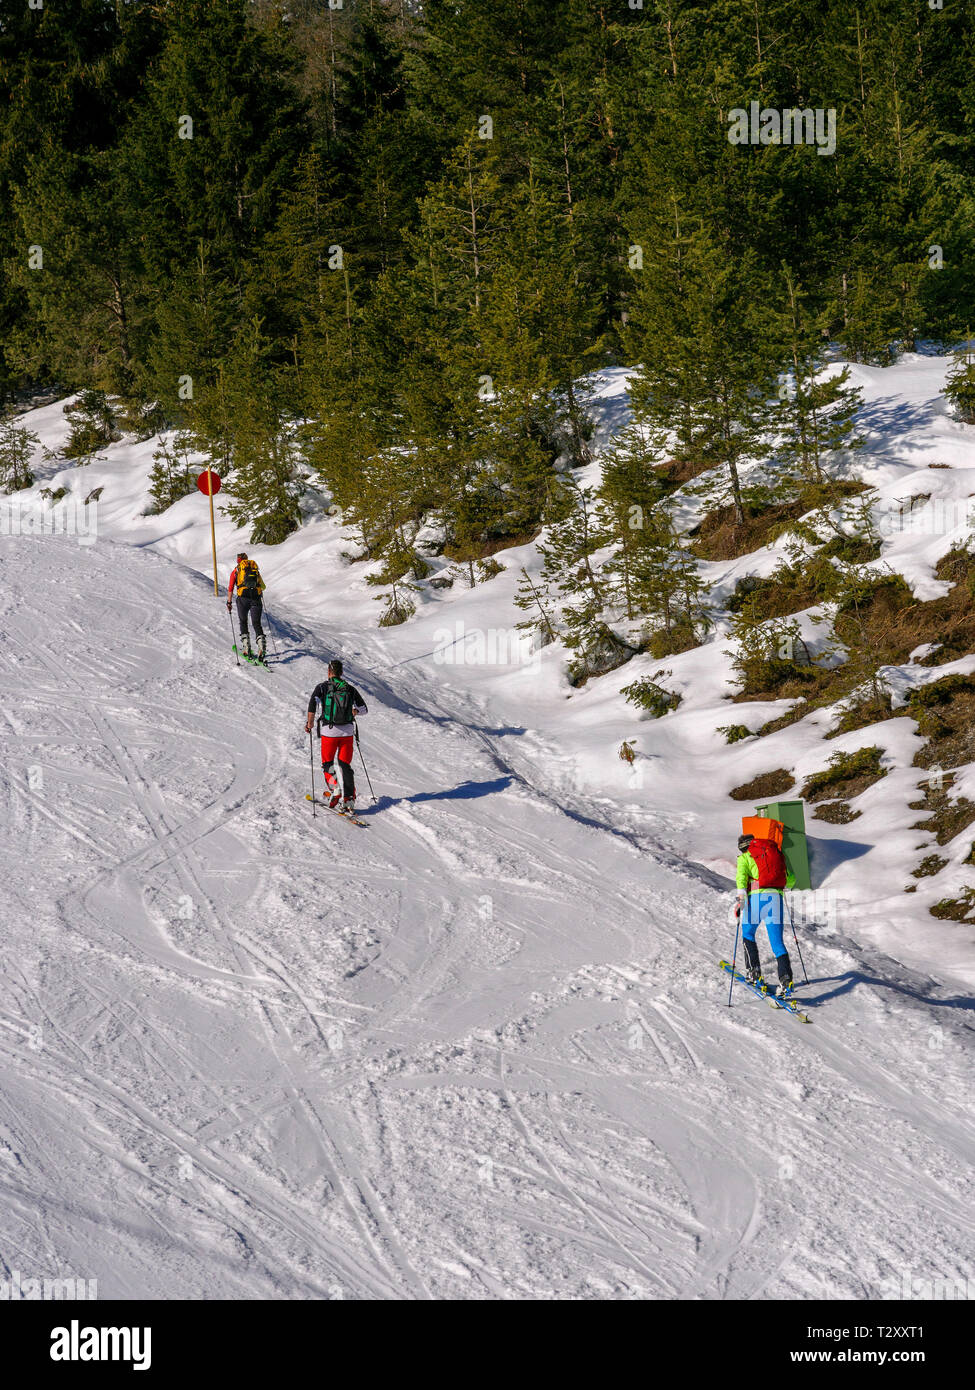 skilift and piste, skiing area Hochimst, Imst, Tyrol, Austria, Europe - Stock Image